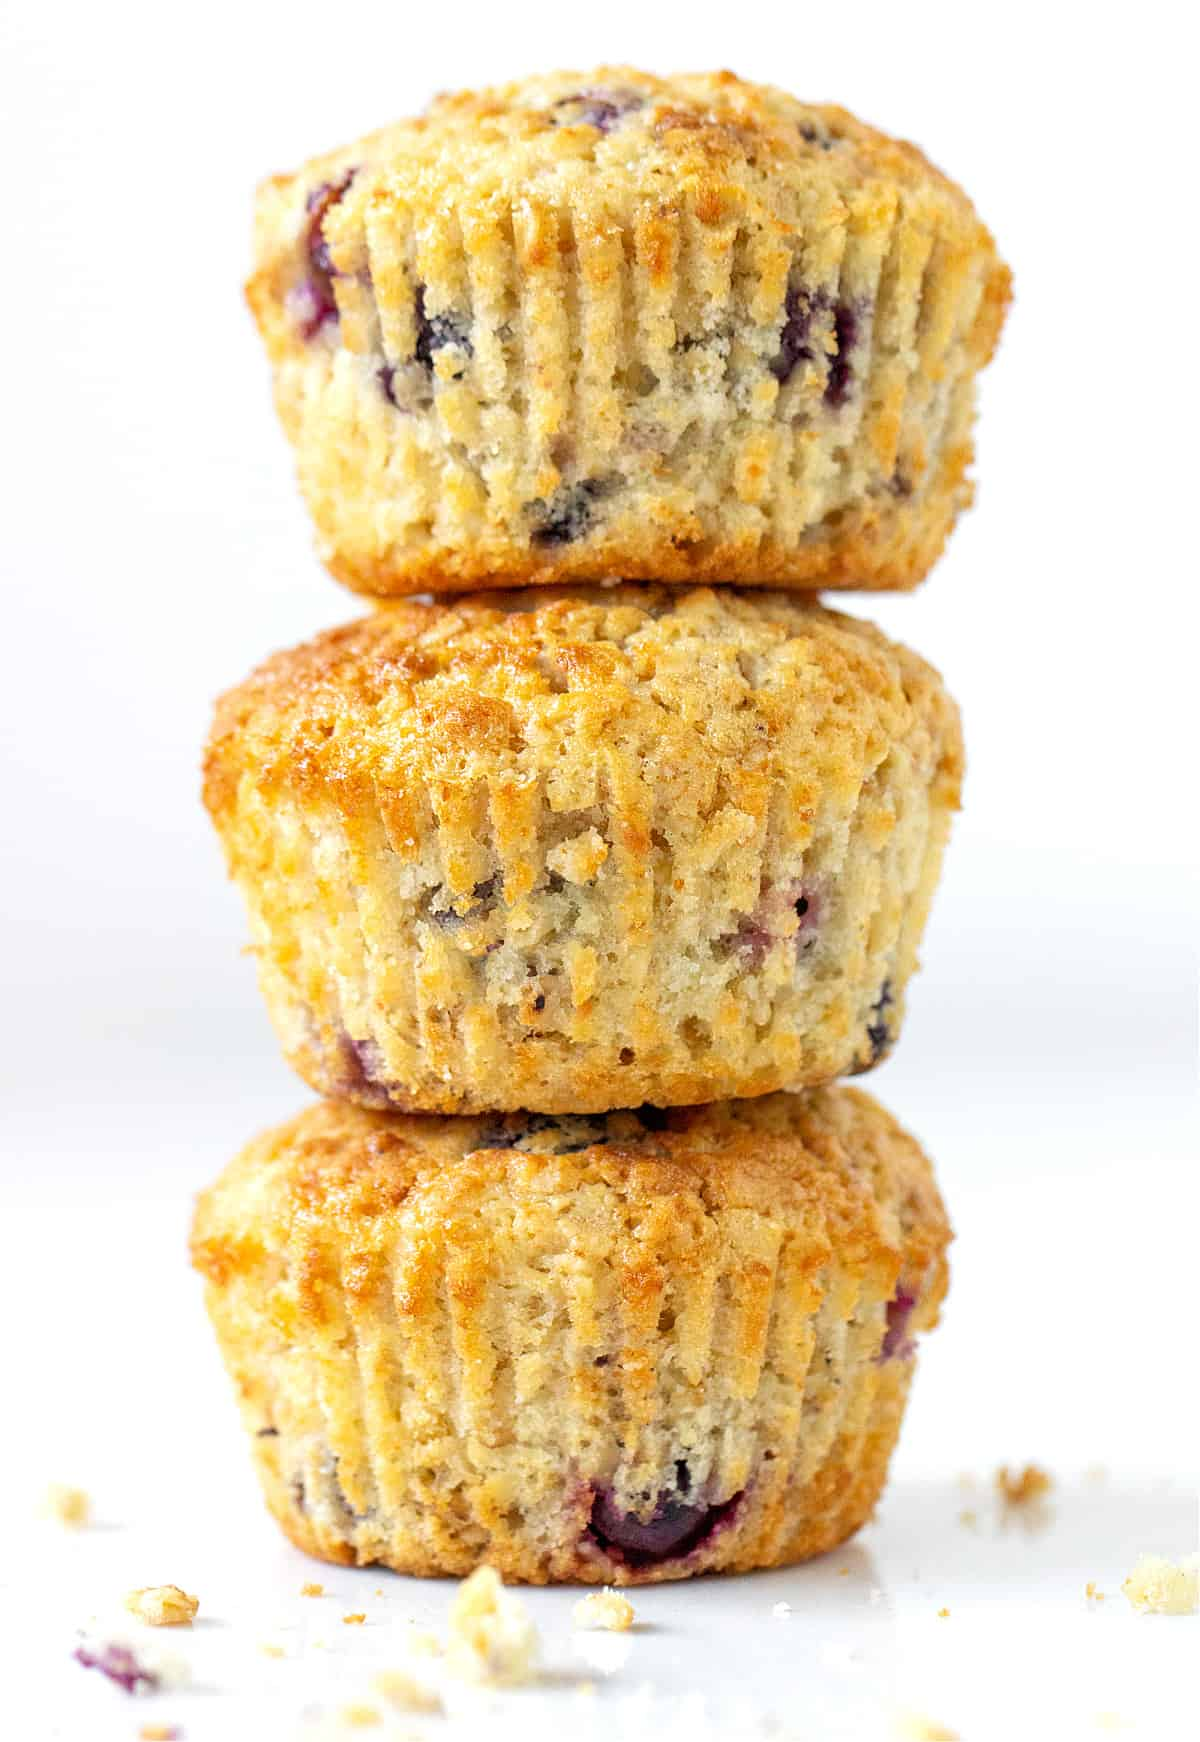 On a white background a stack of three blueberry muffins